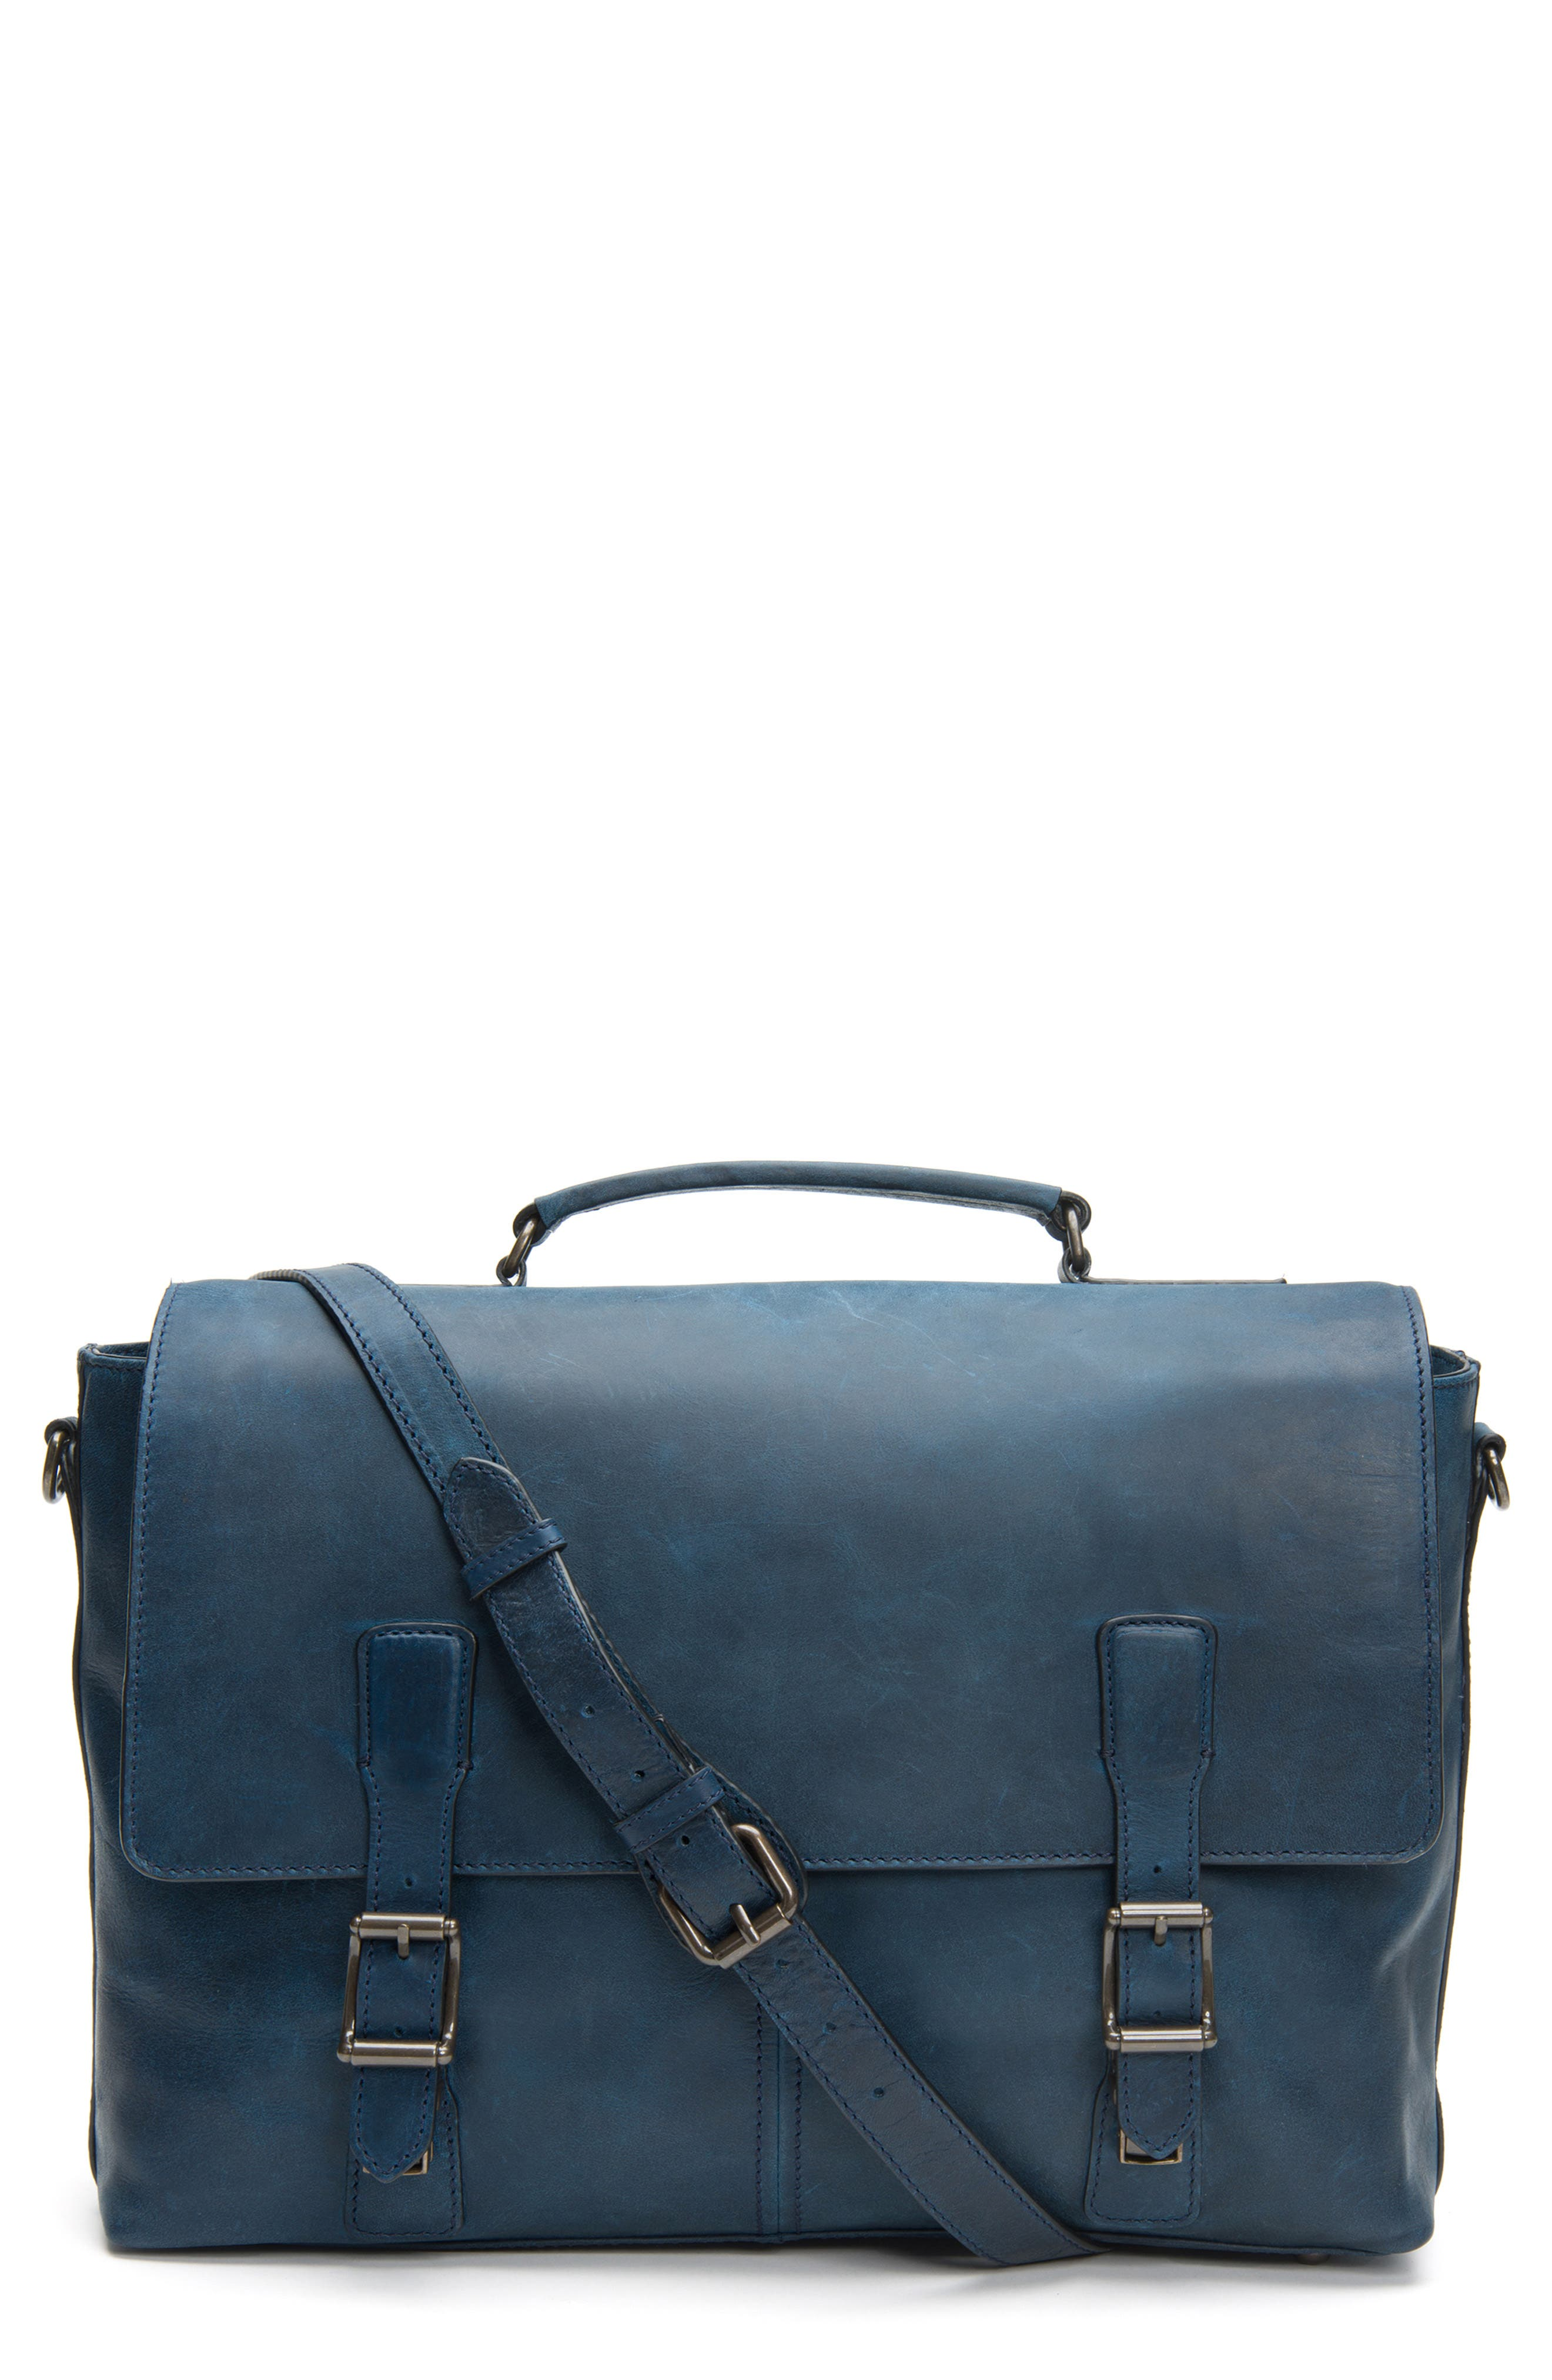 FRYE Logan Leather Briefcase, Main, color, NAVY